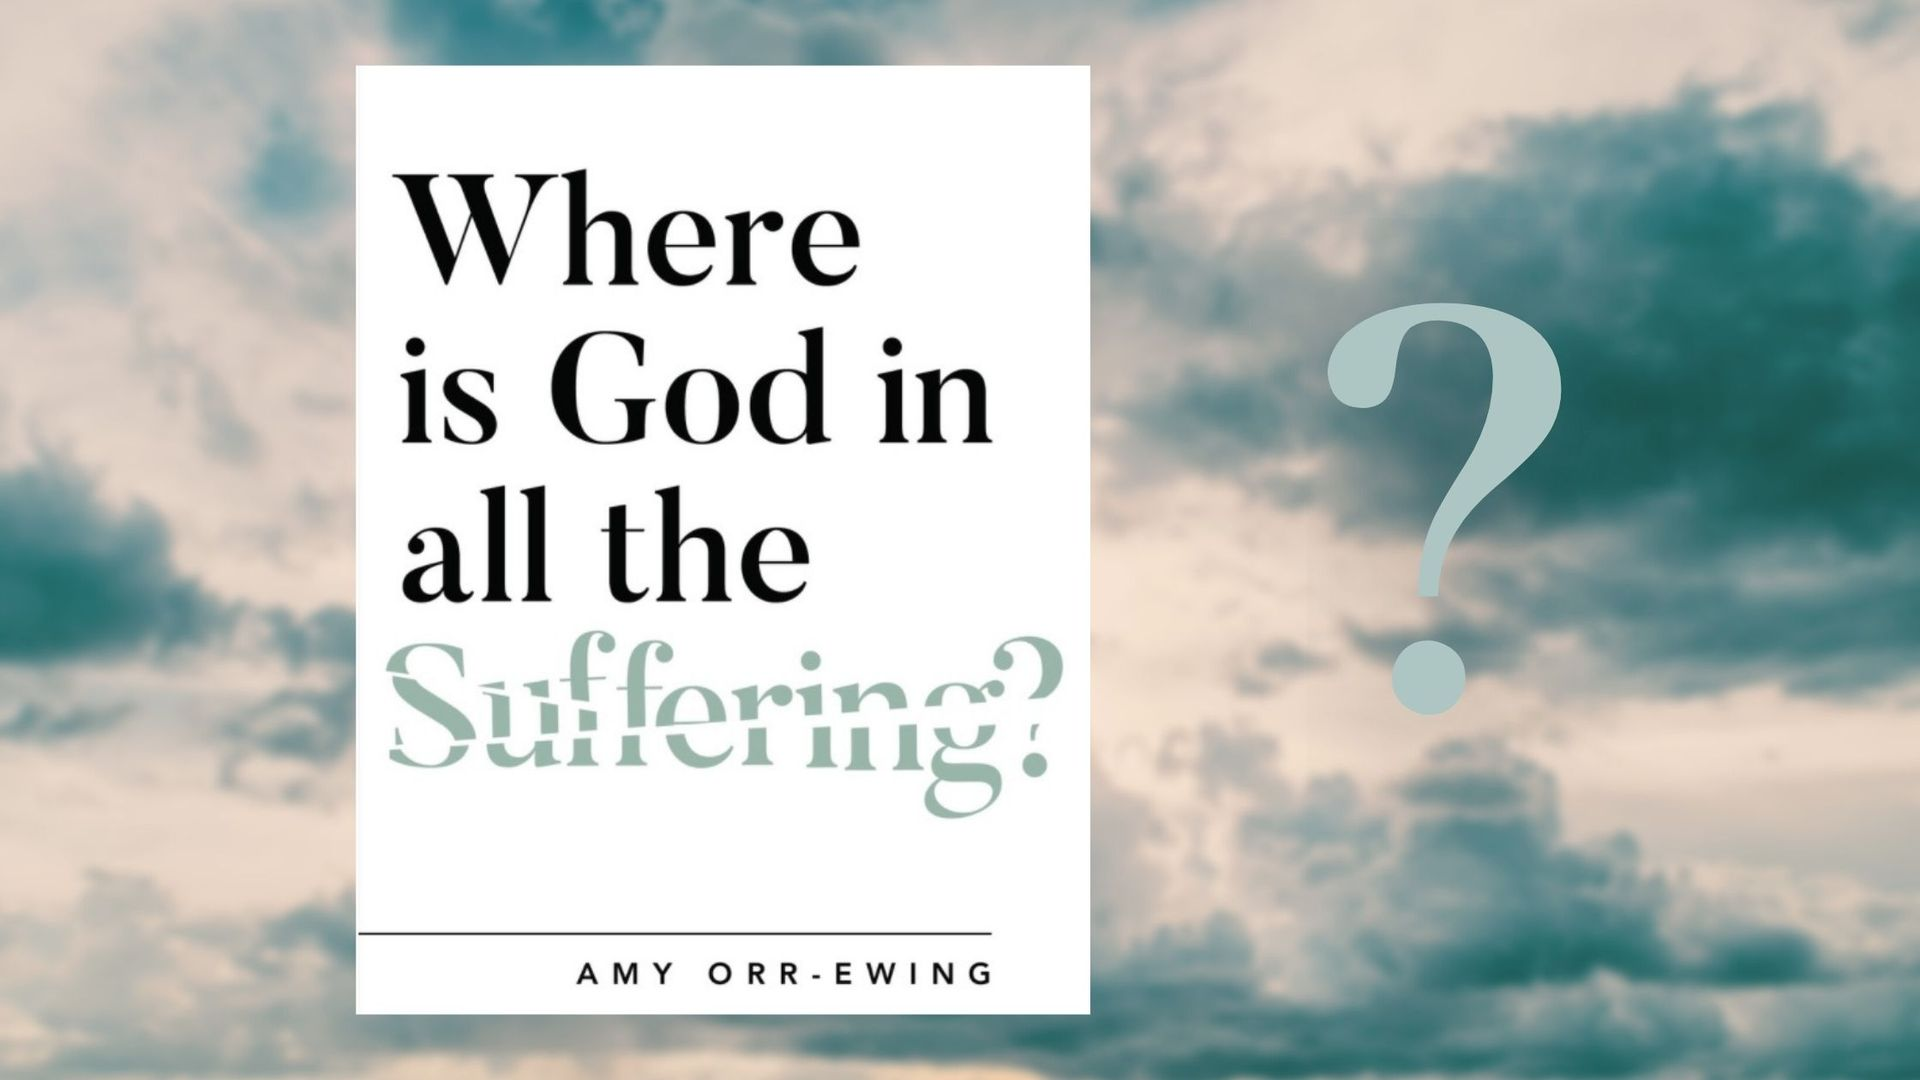 An article by Amy Orr Ewing, author of the book 'Where is God in the Suffering?'